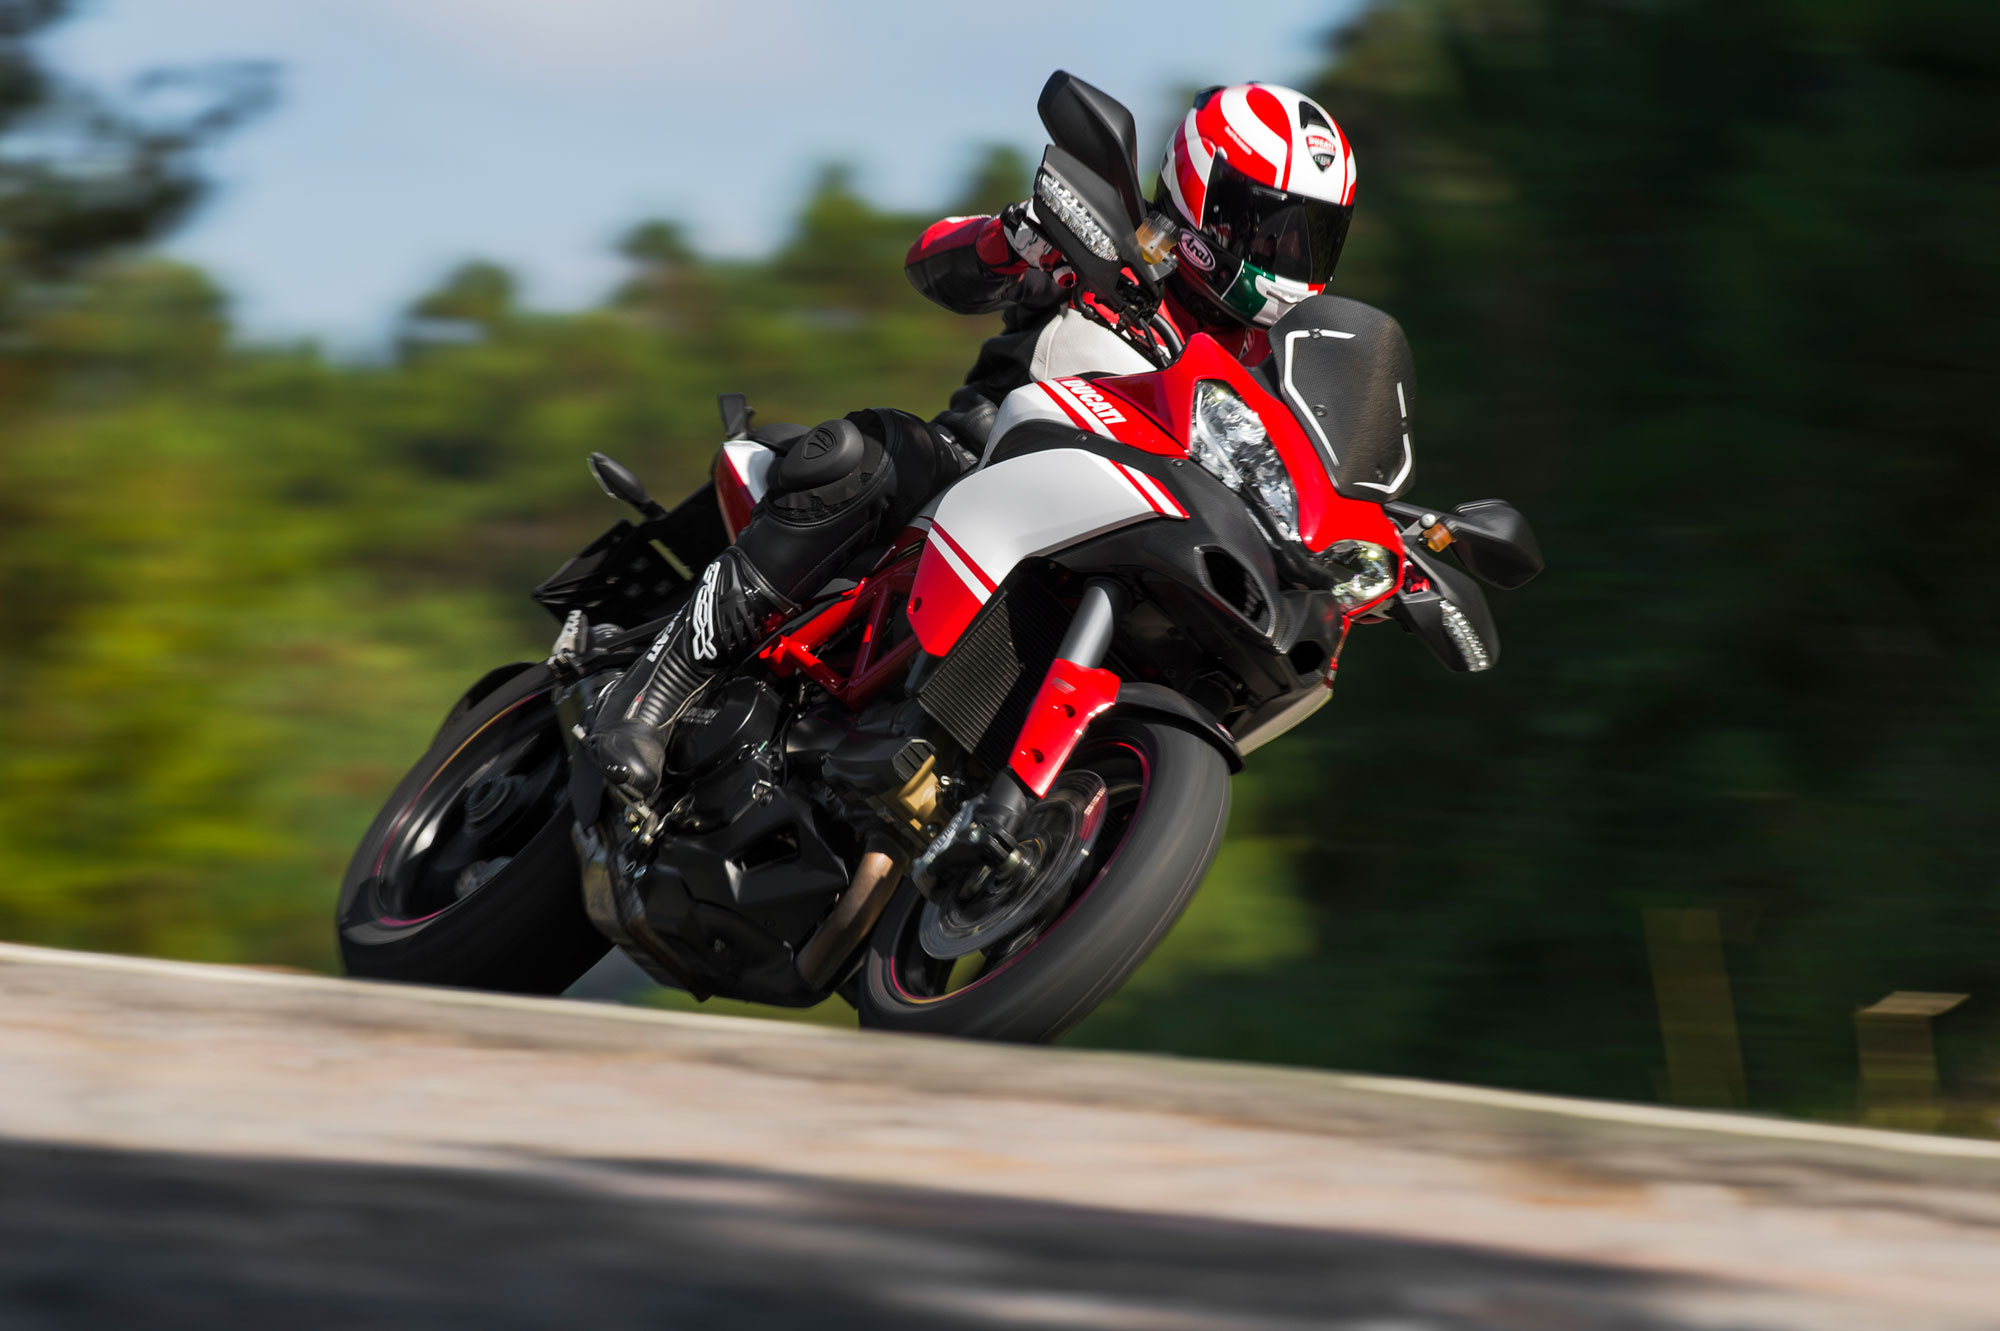 Ducati Multistrada 1200 S Pikes Peak Edition 2013 images #80021